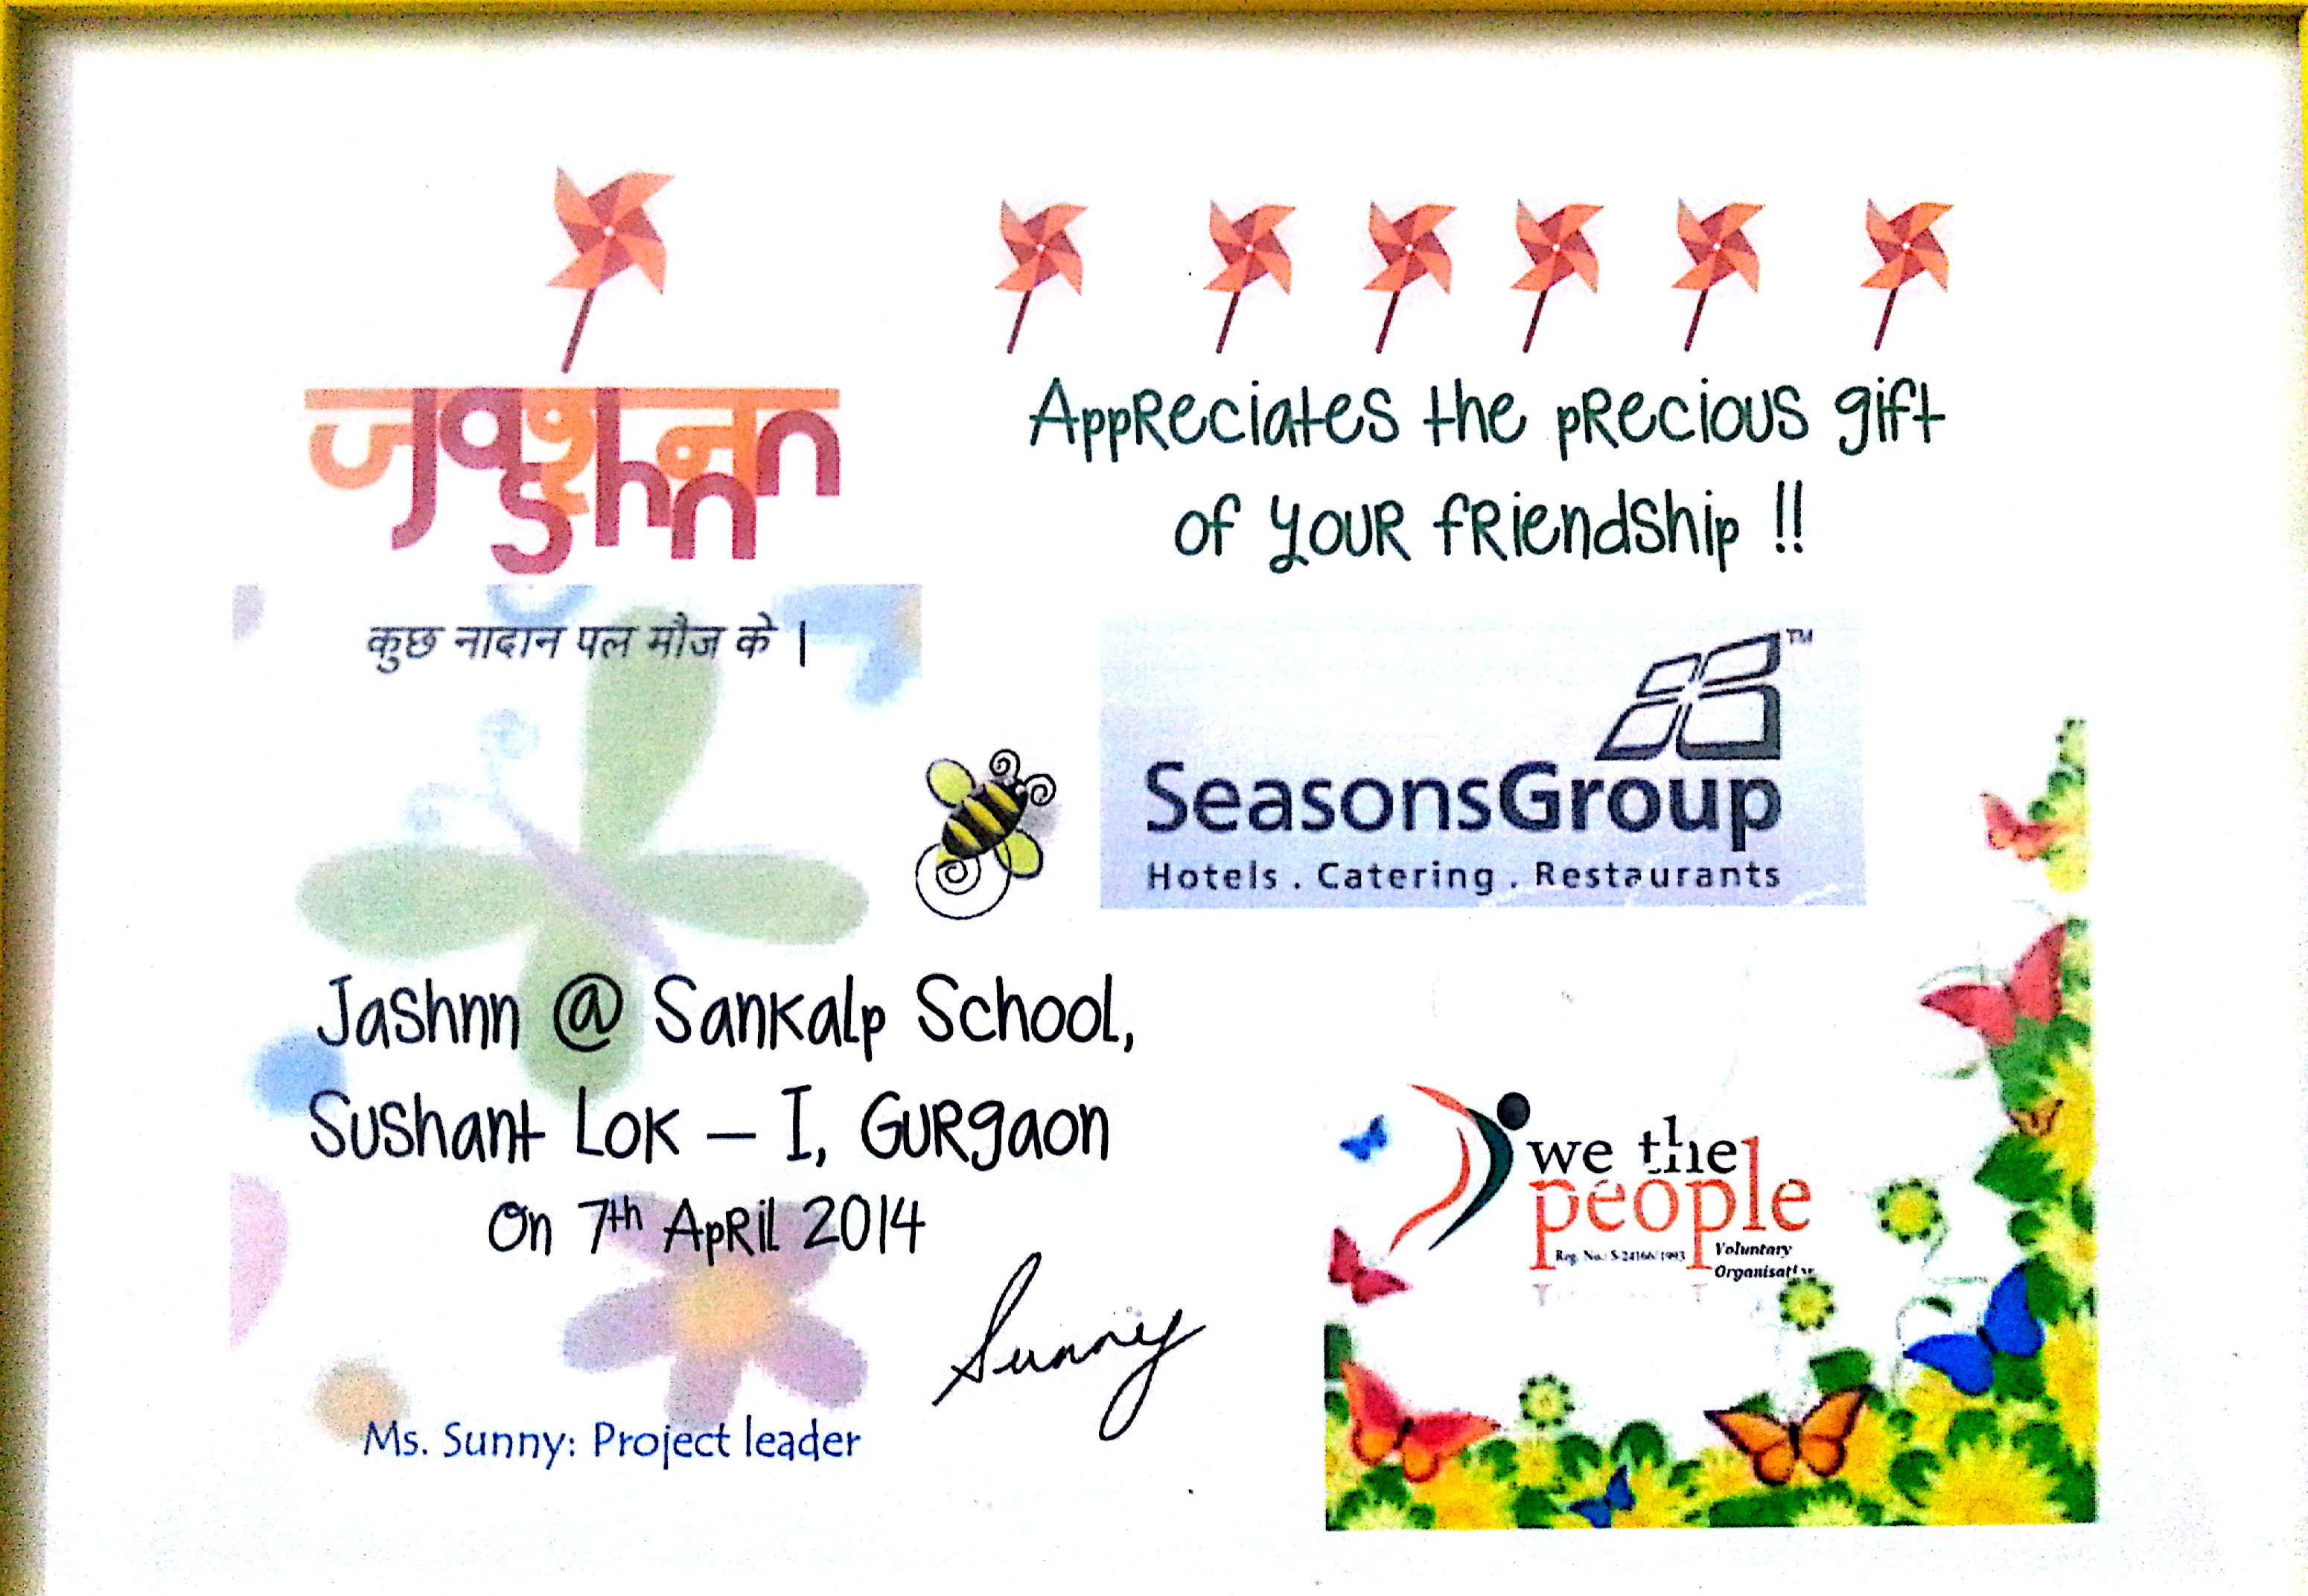 Jashnn - April 2014 - Seasons